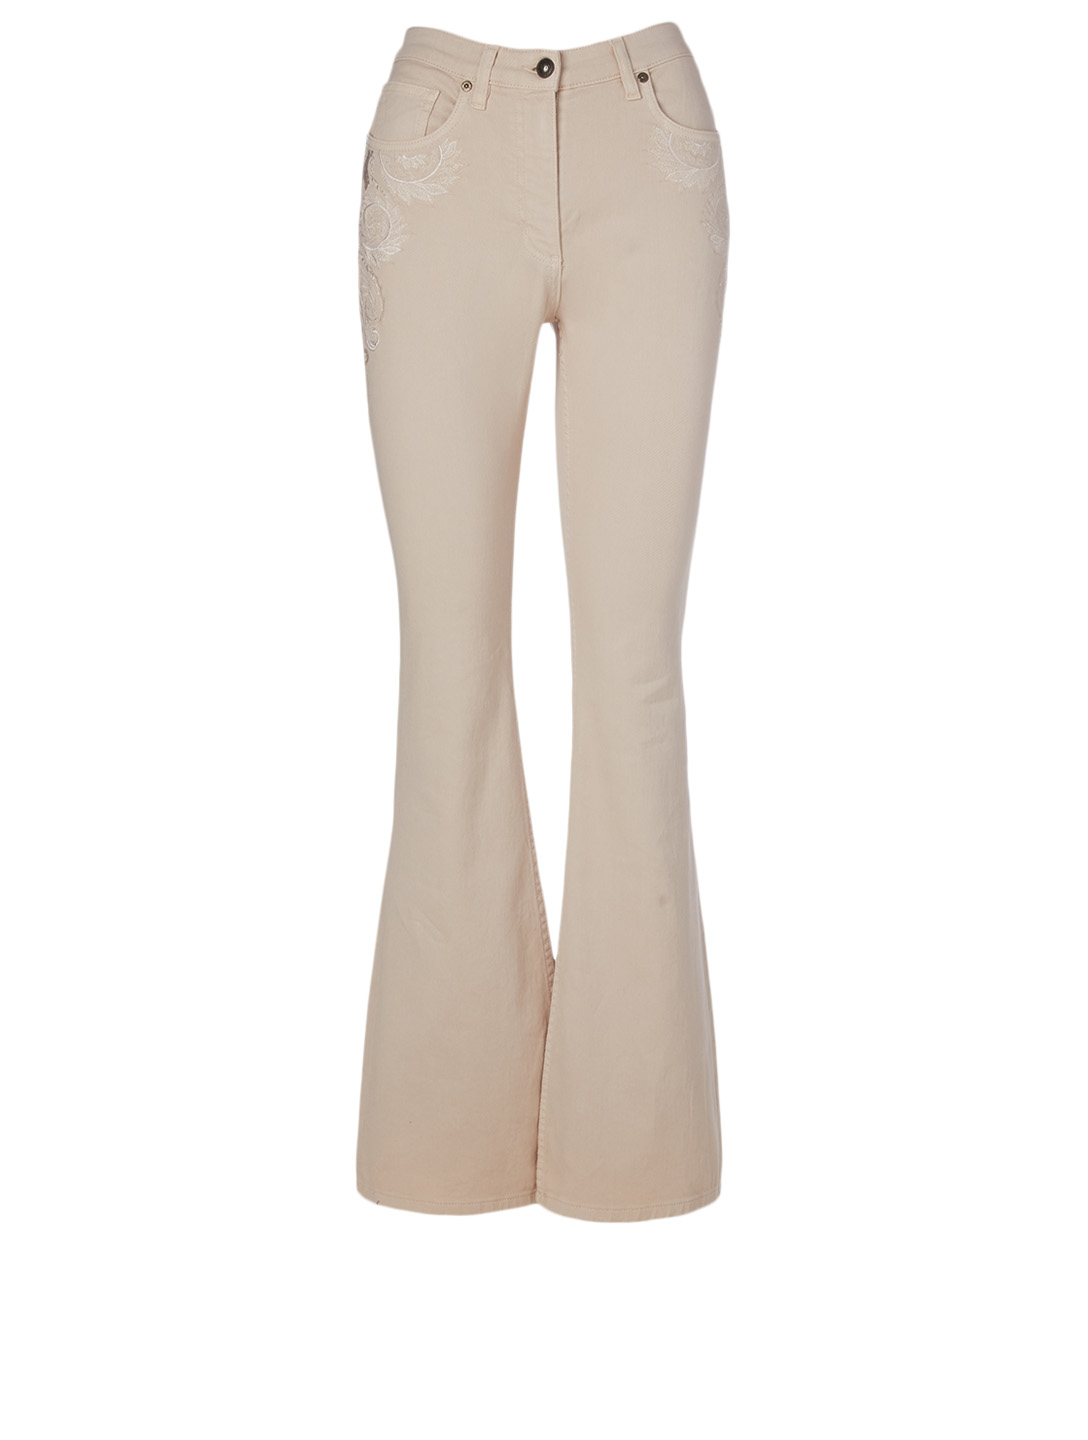 ETRO Cotton Stretch Flare Jeans Women's White